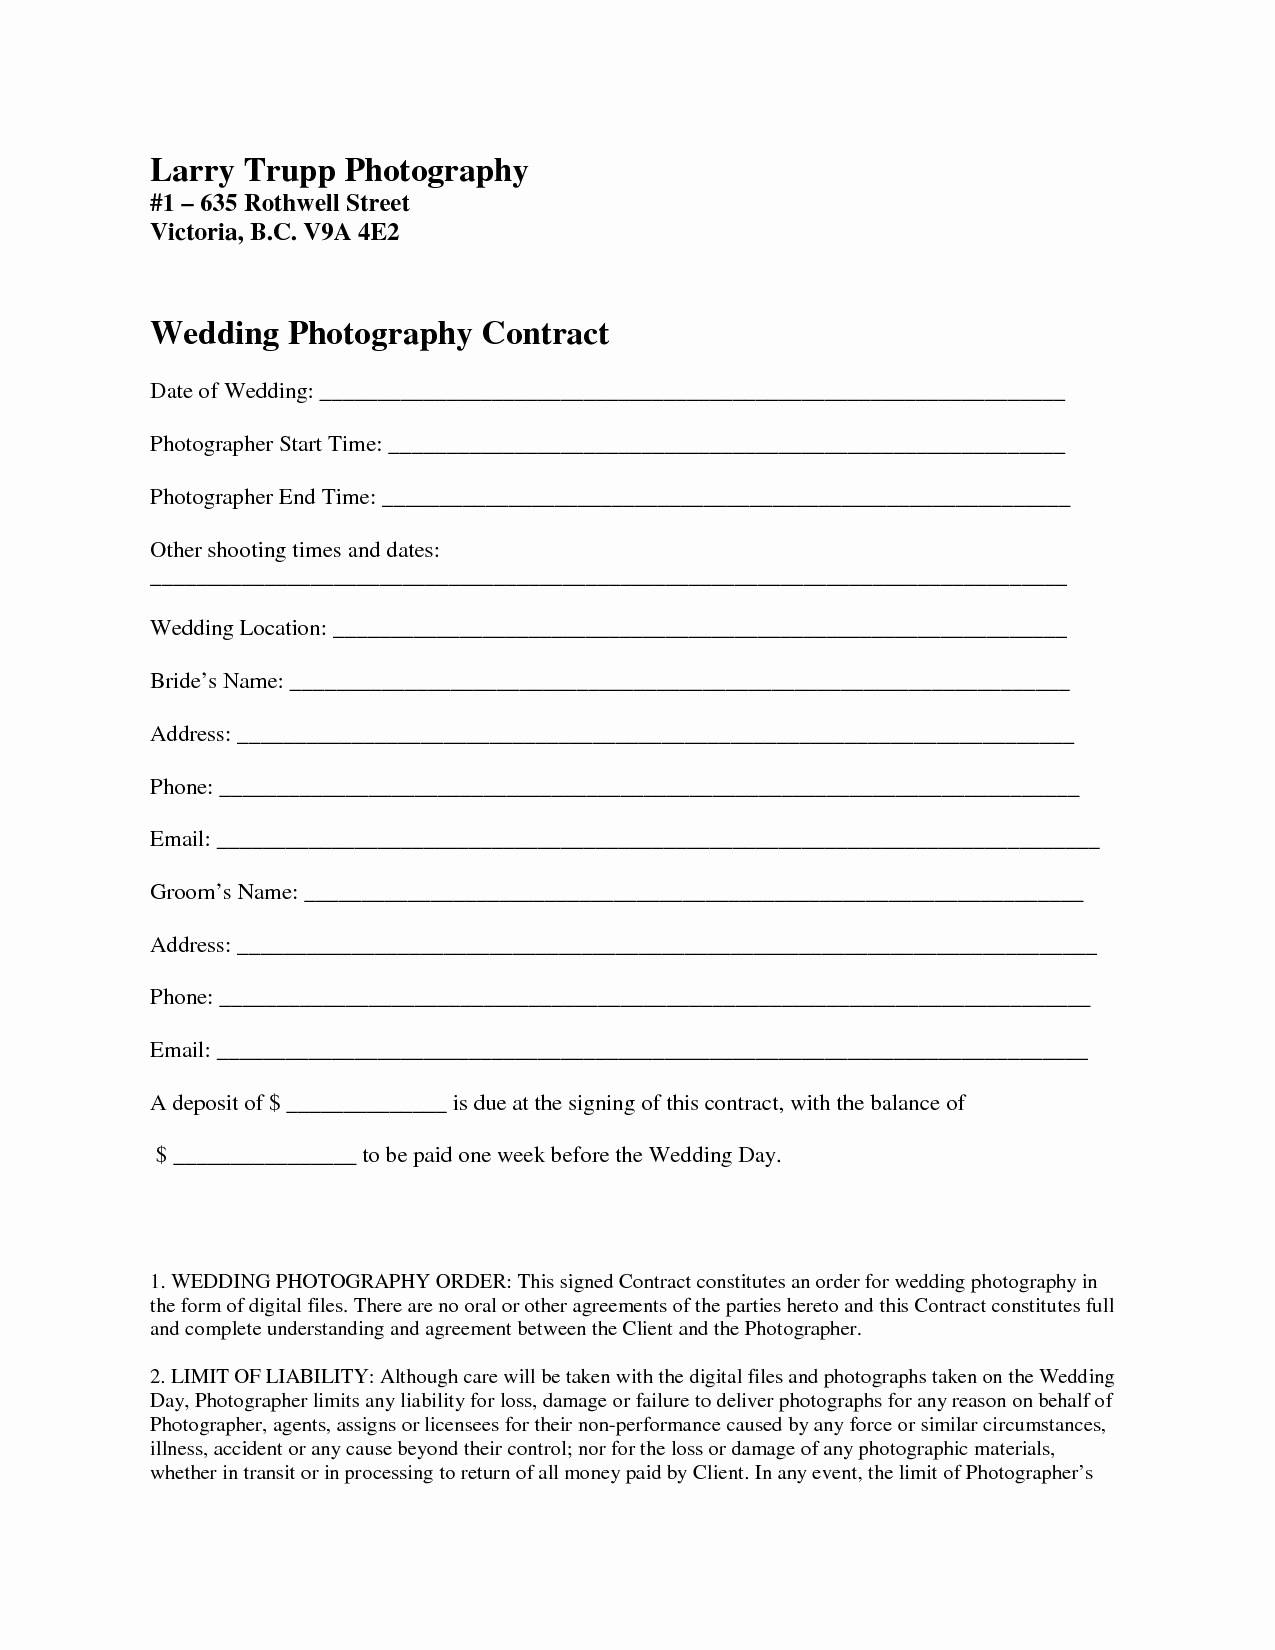 Wedding Photography Contract Template Elegant Graphy Contract Template